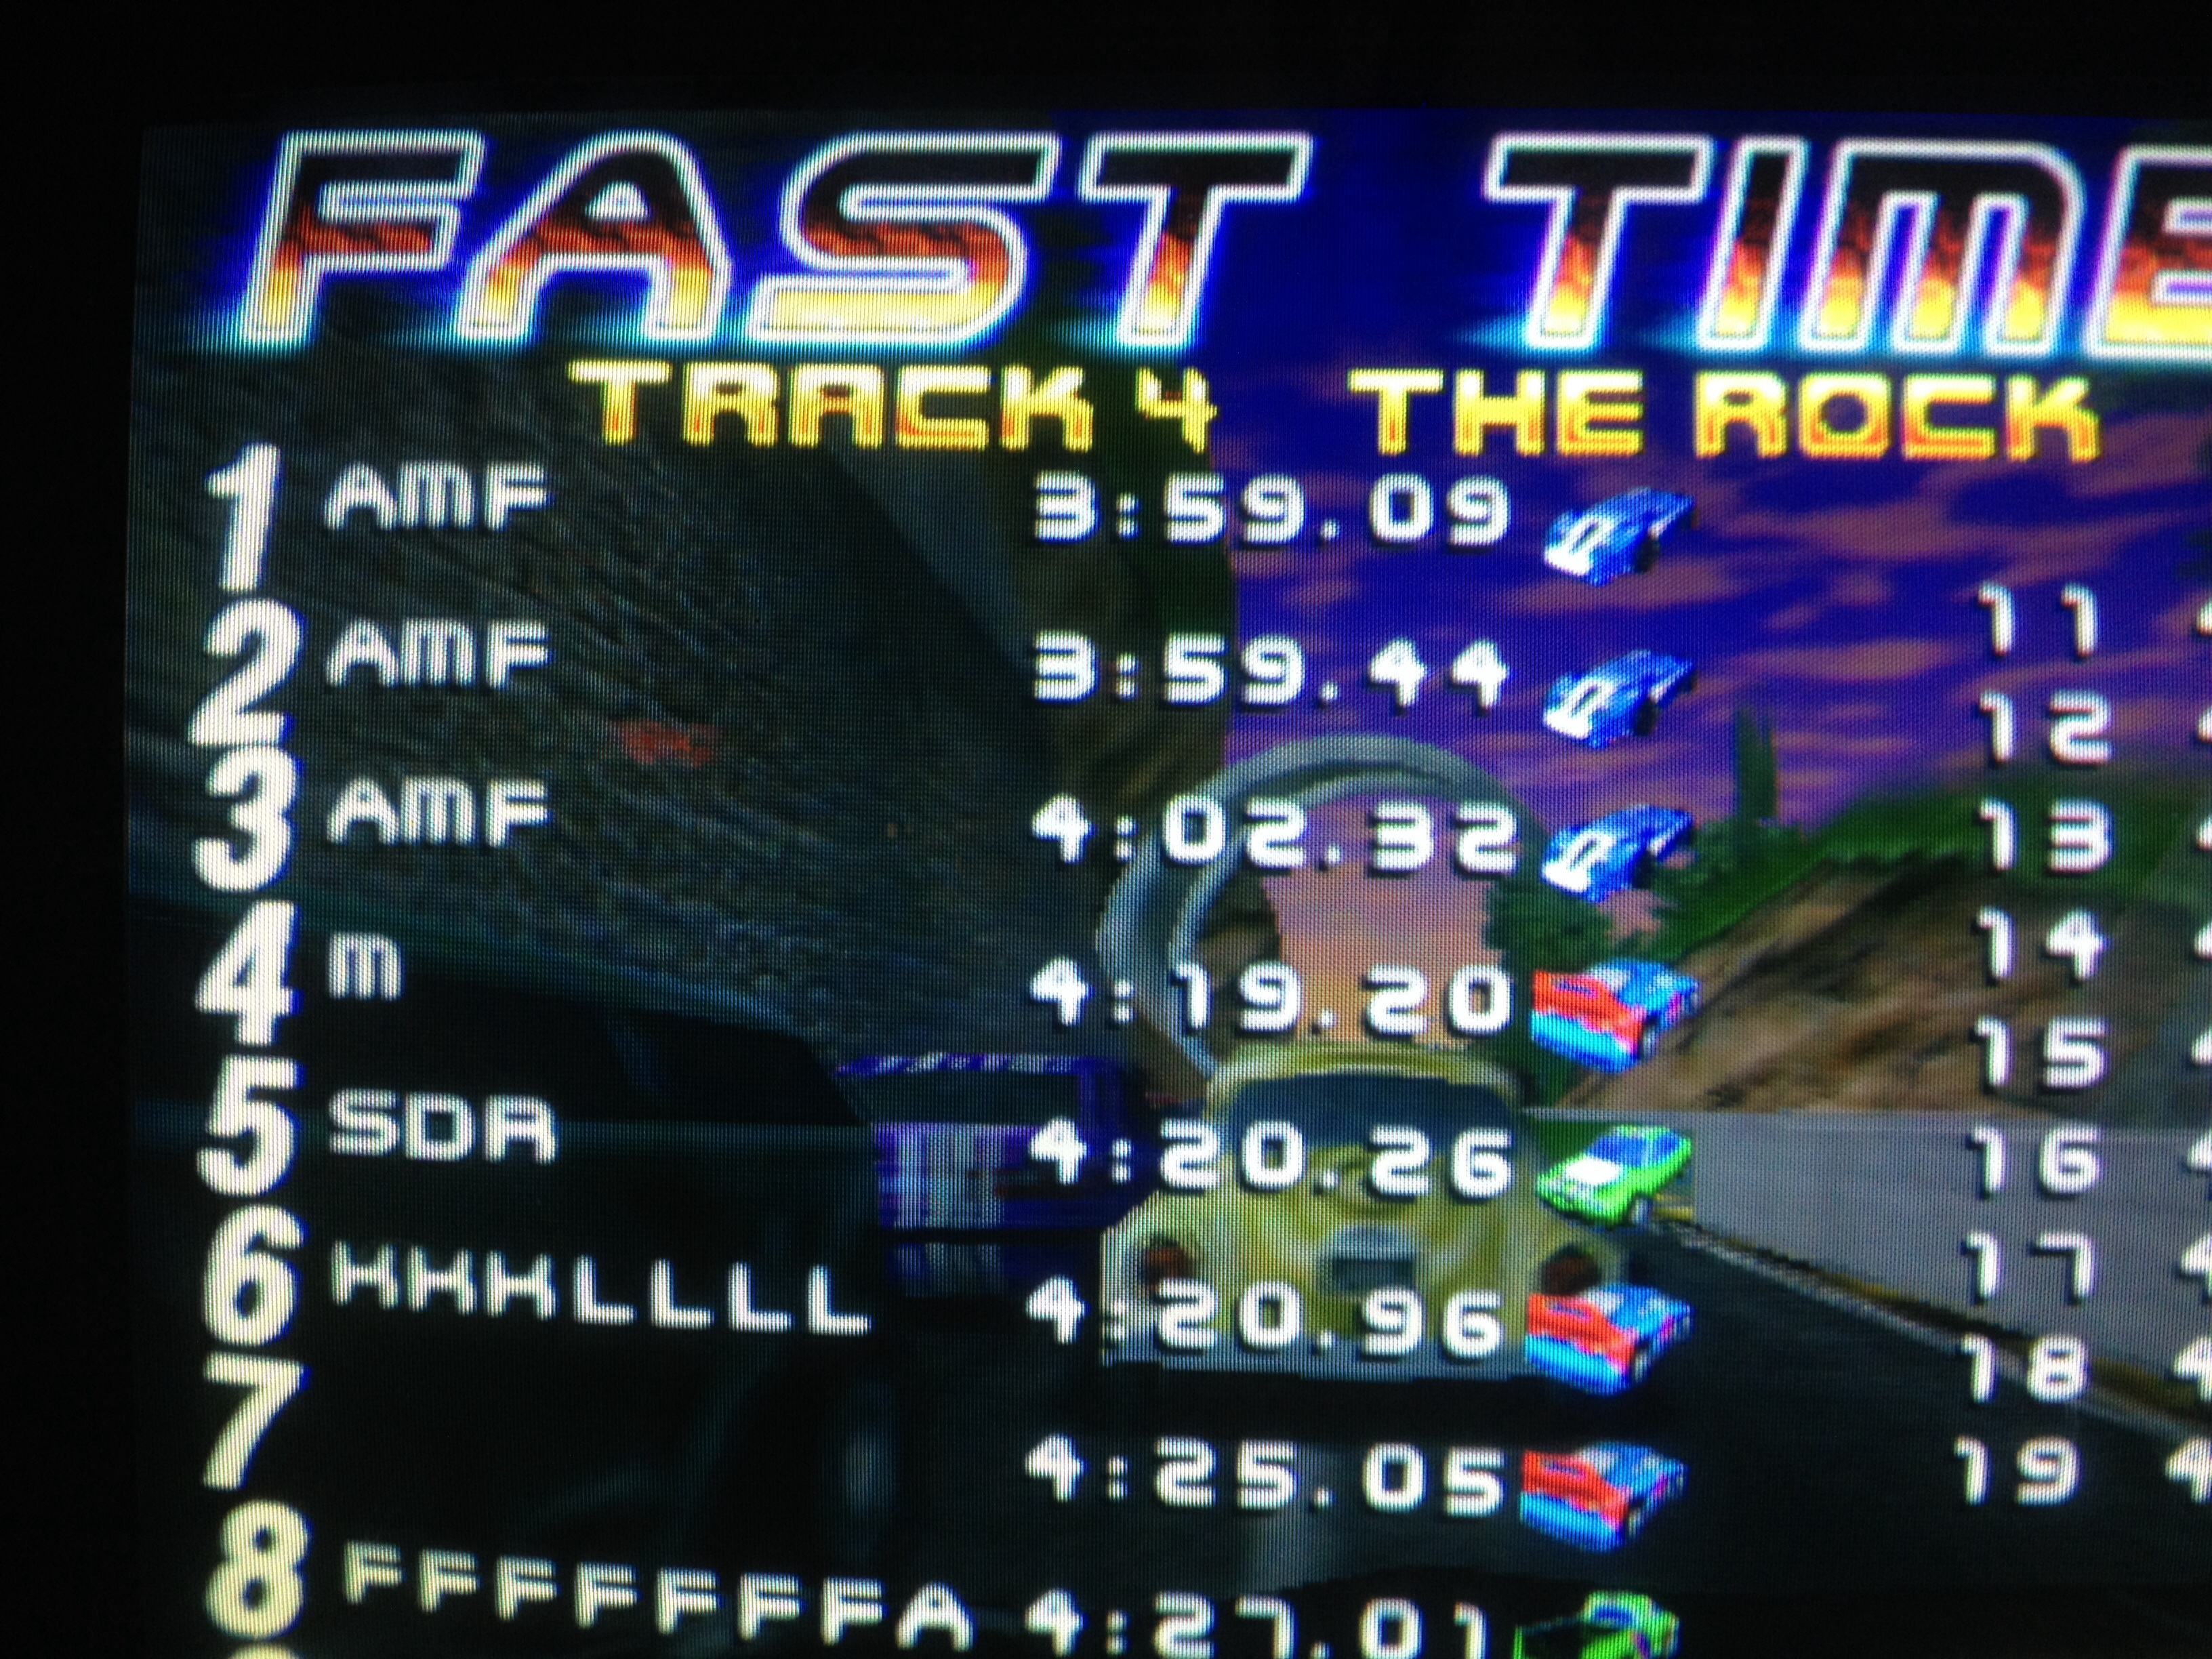 San Francisco Rush: The Rock [Track 4] time of 0:03:59.09